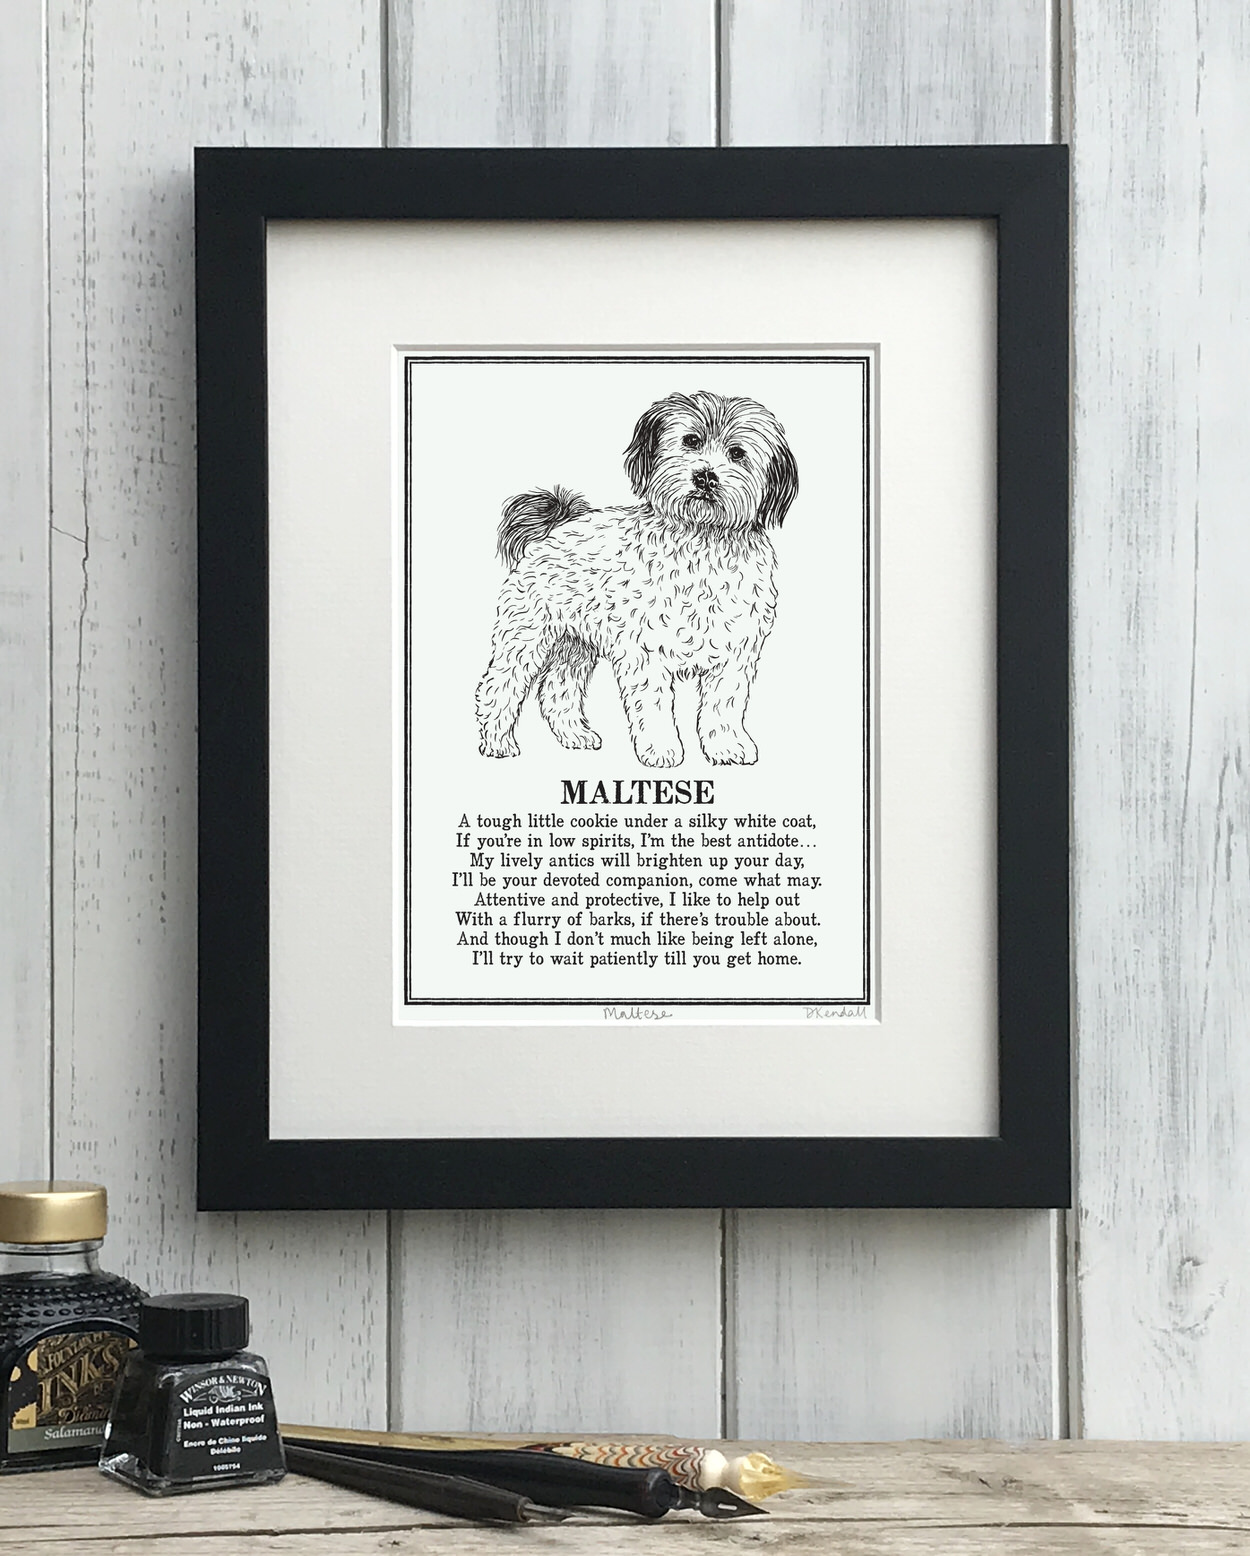 Maltese print illustrated poem by The Enlightened Hound